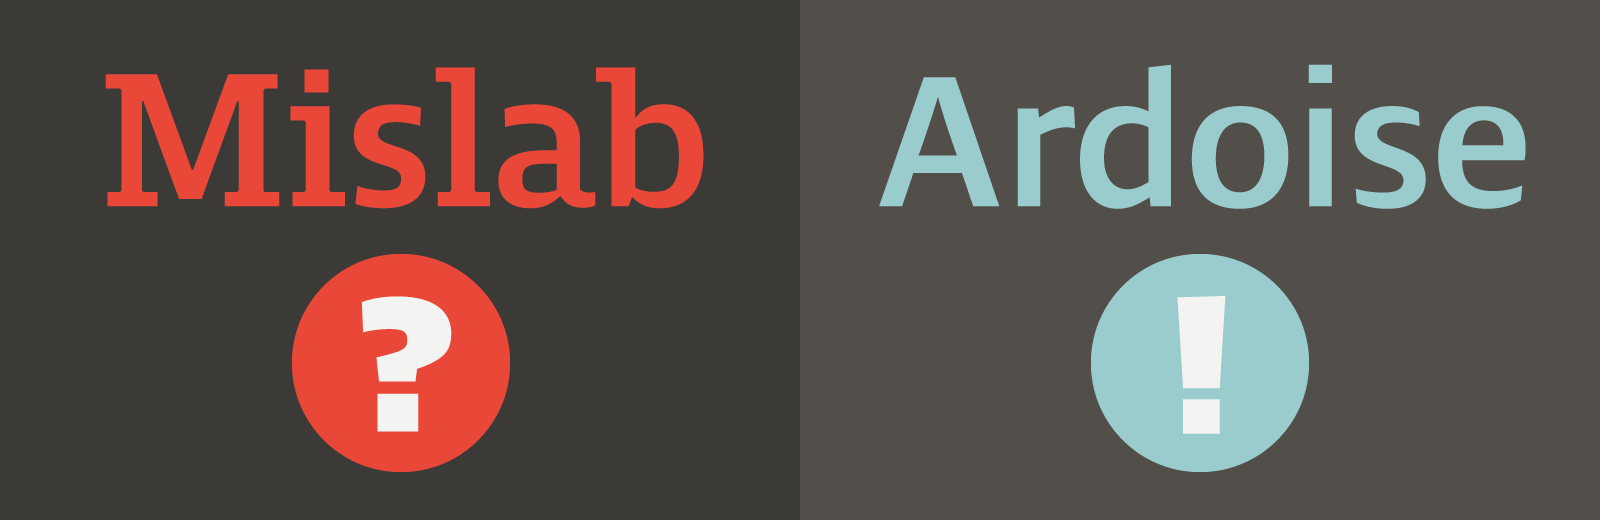 Time to choose between Mislab and Ardoise typefaces from Typofonderie